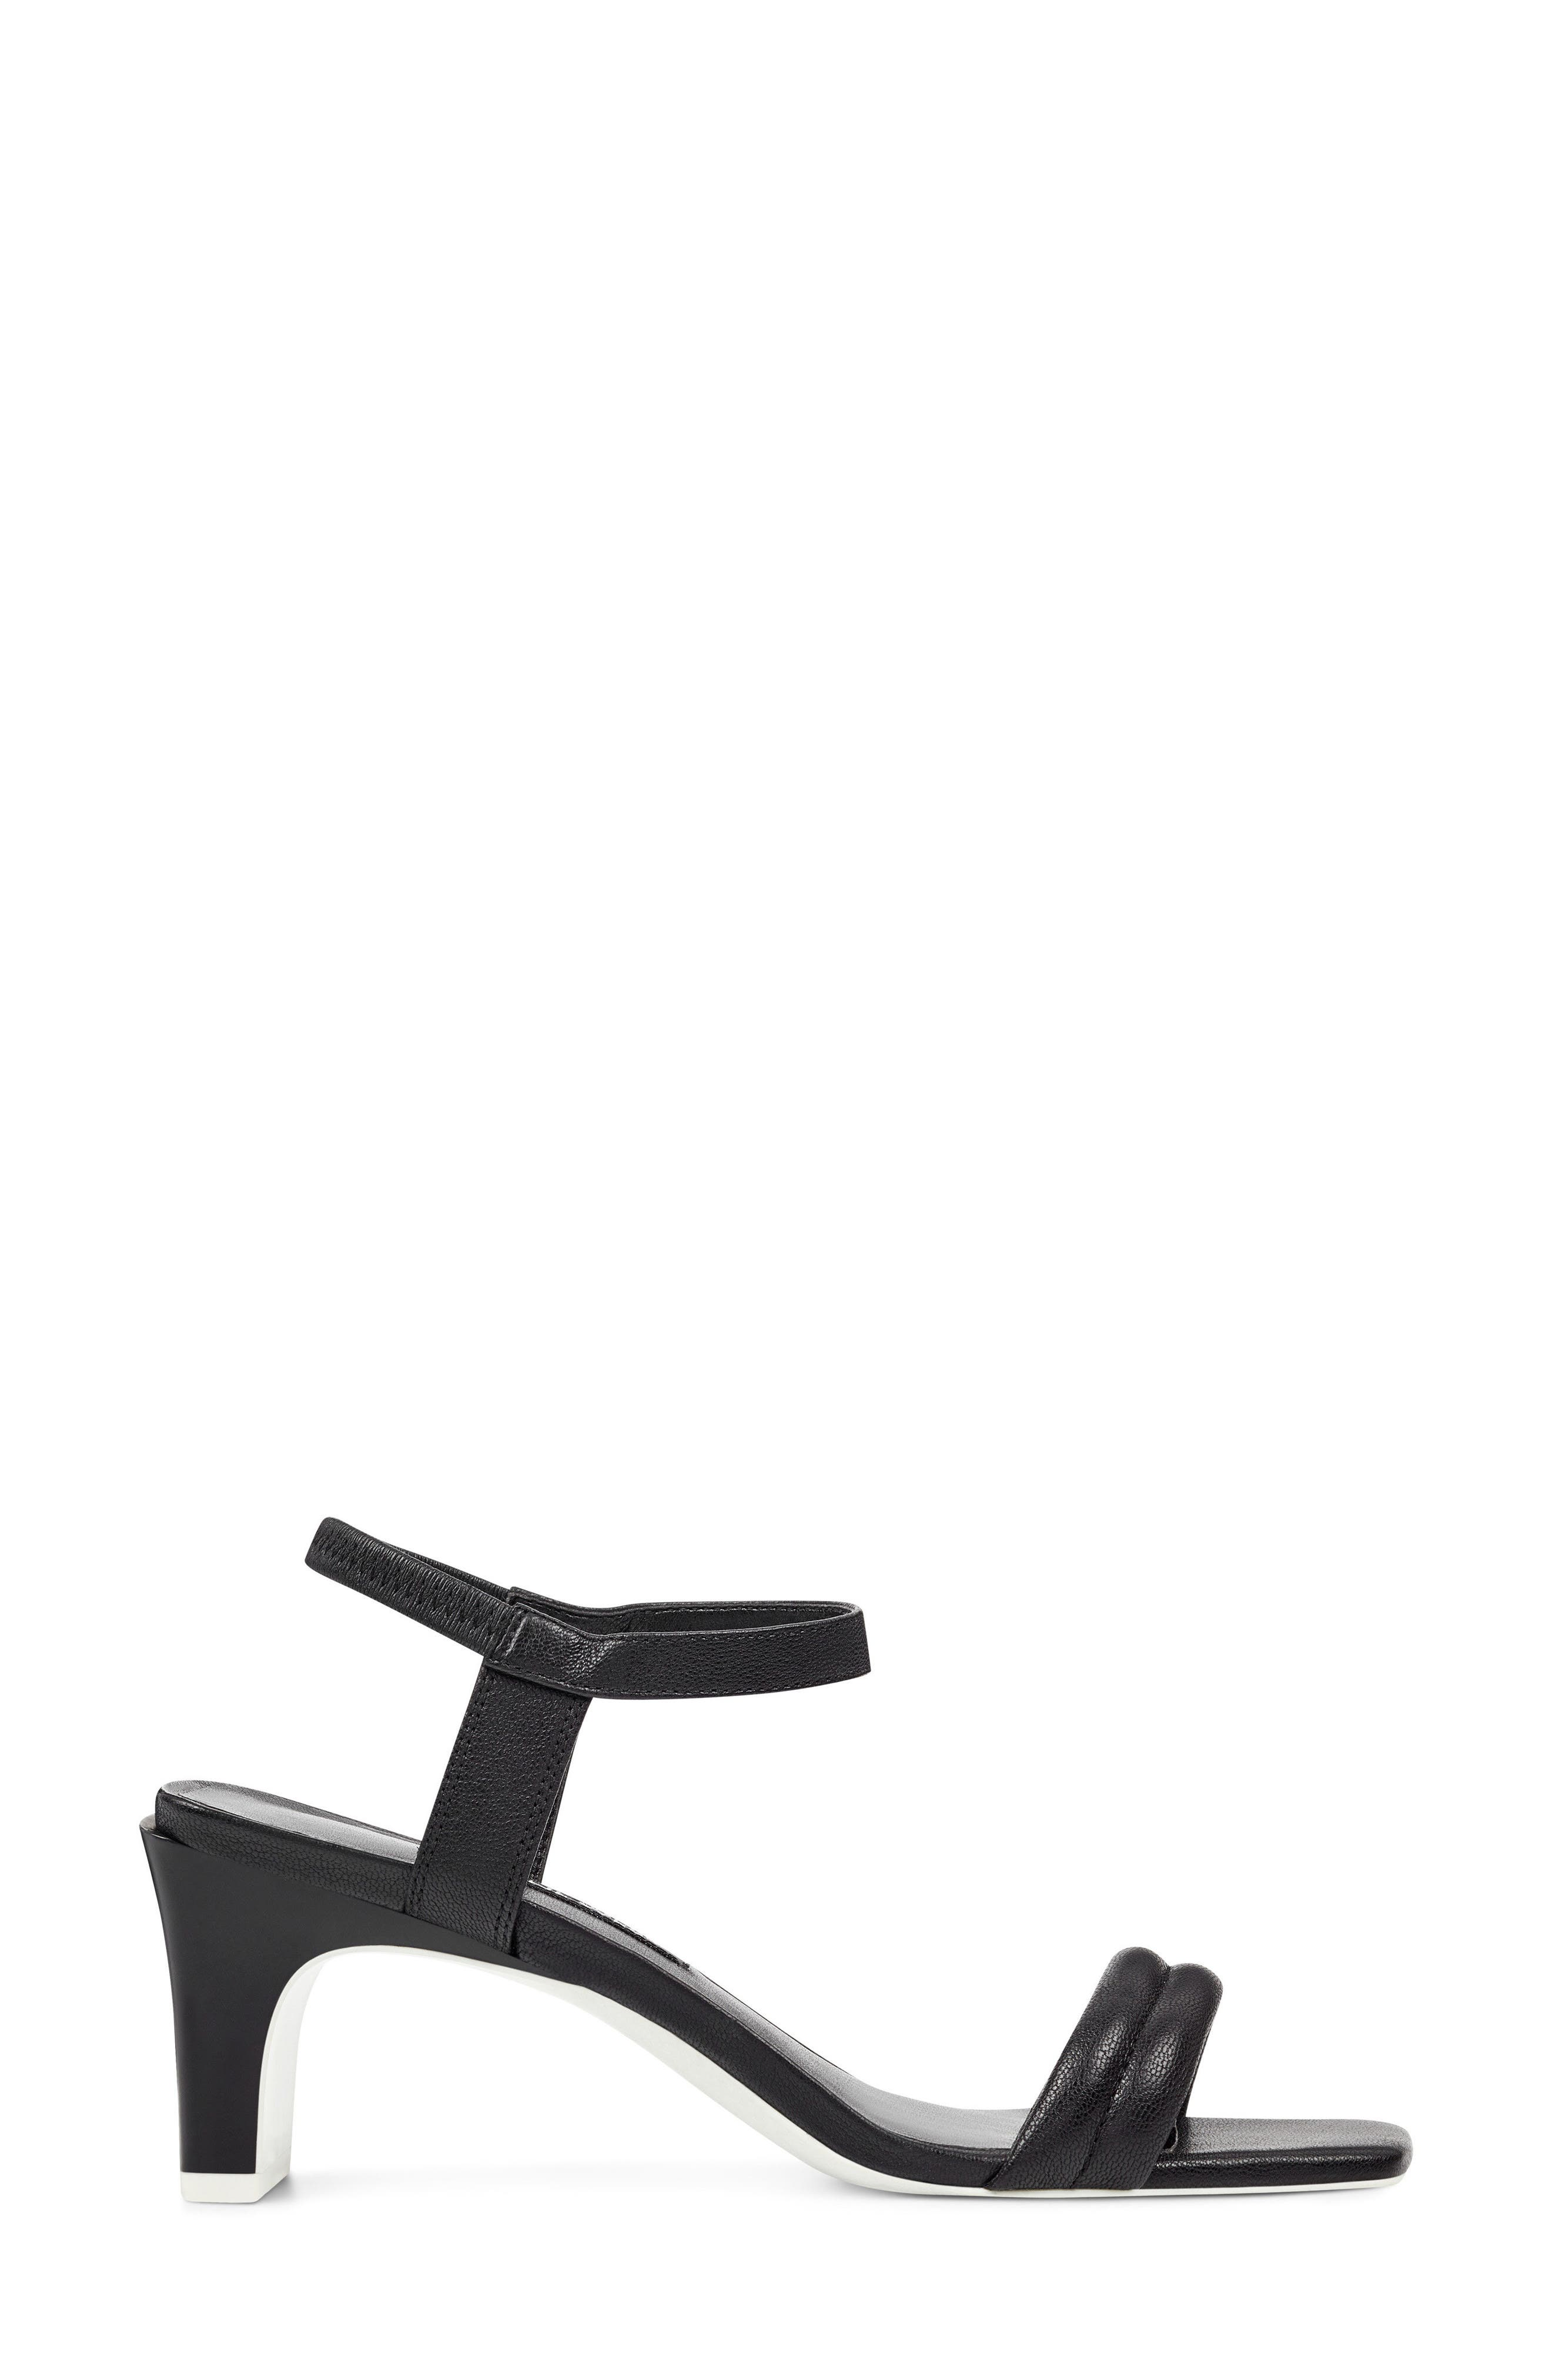 Urgreat Ankle Strap Sandal,                             Alternate thumbnail 3, color,                             BLACK LEATHER